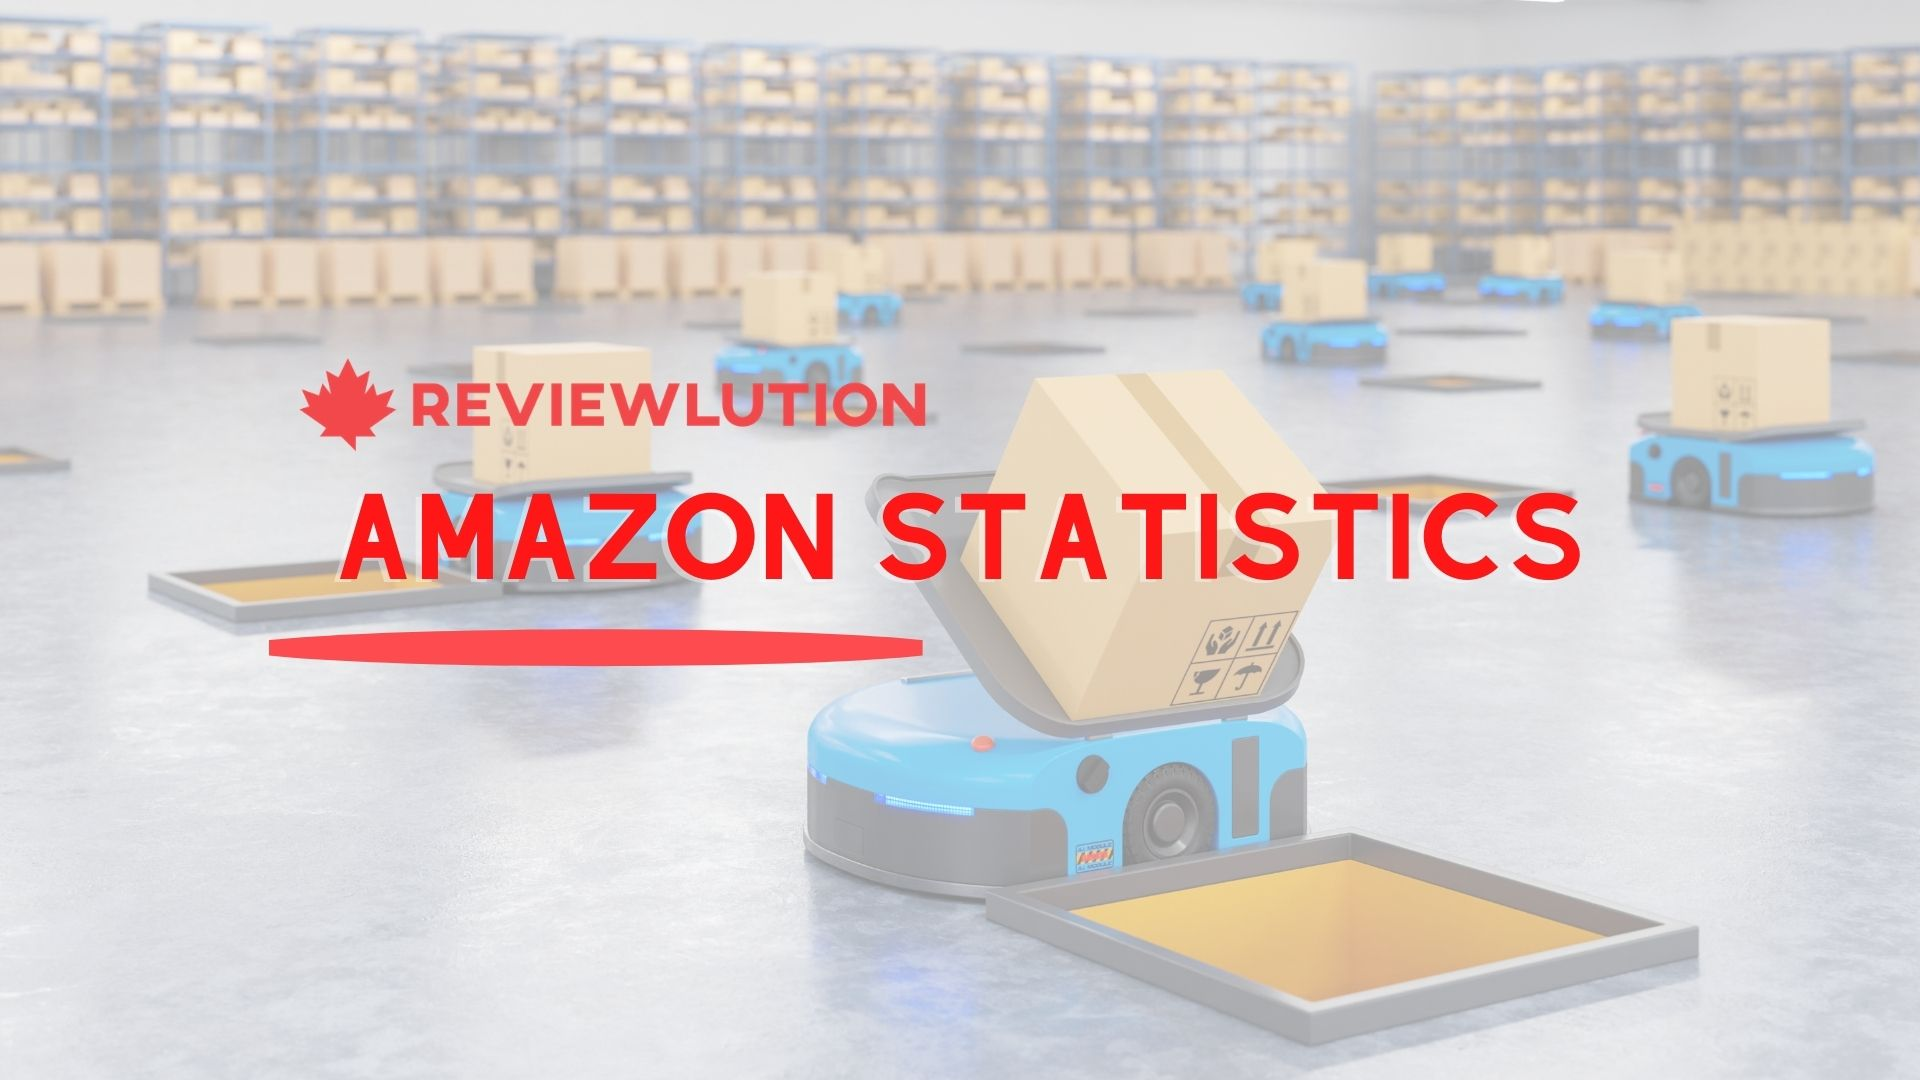 21 Amazing Amazon Statistics You Need to Read in 2021